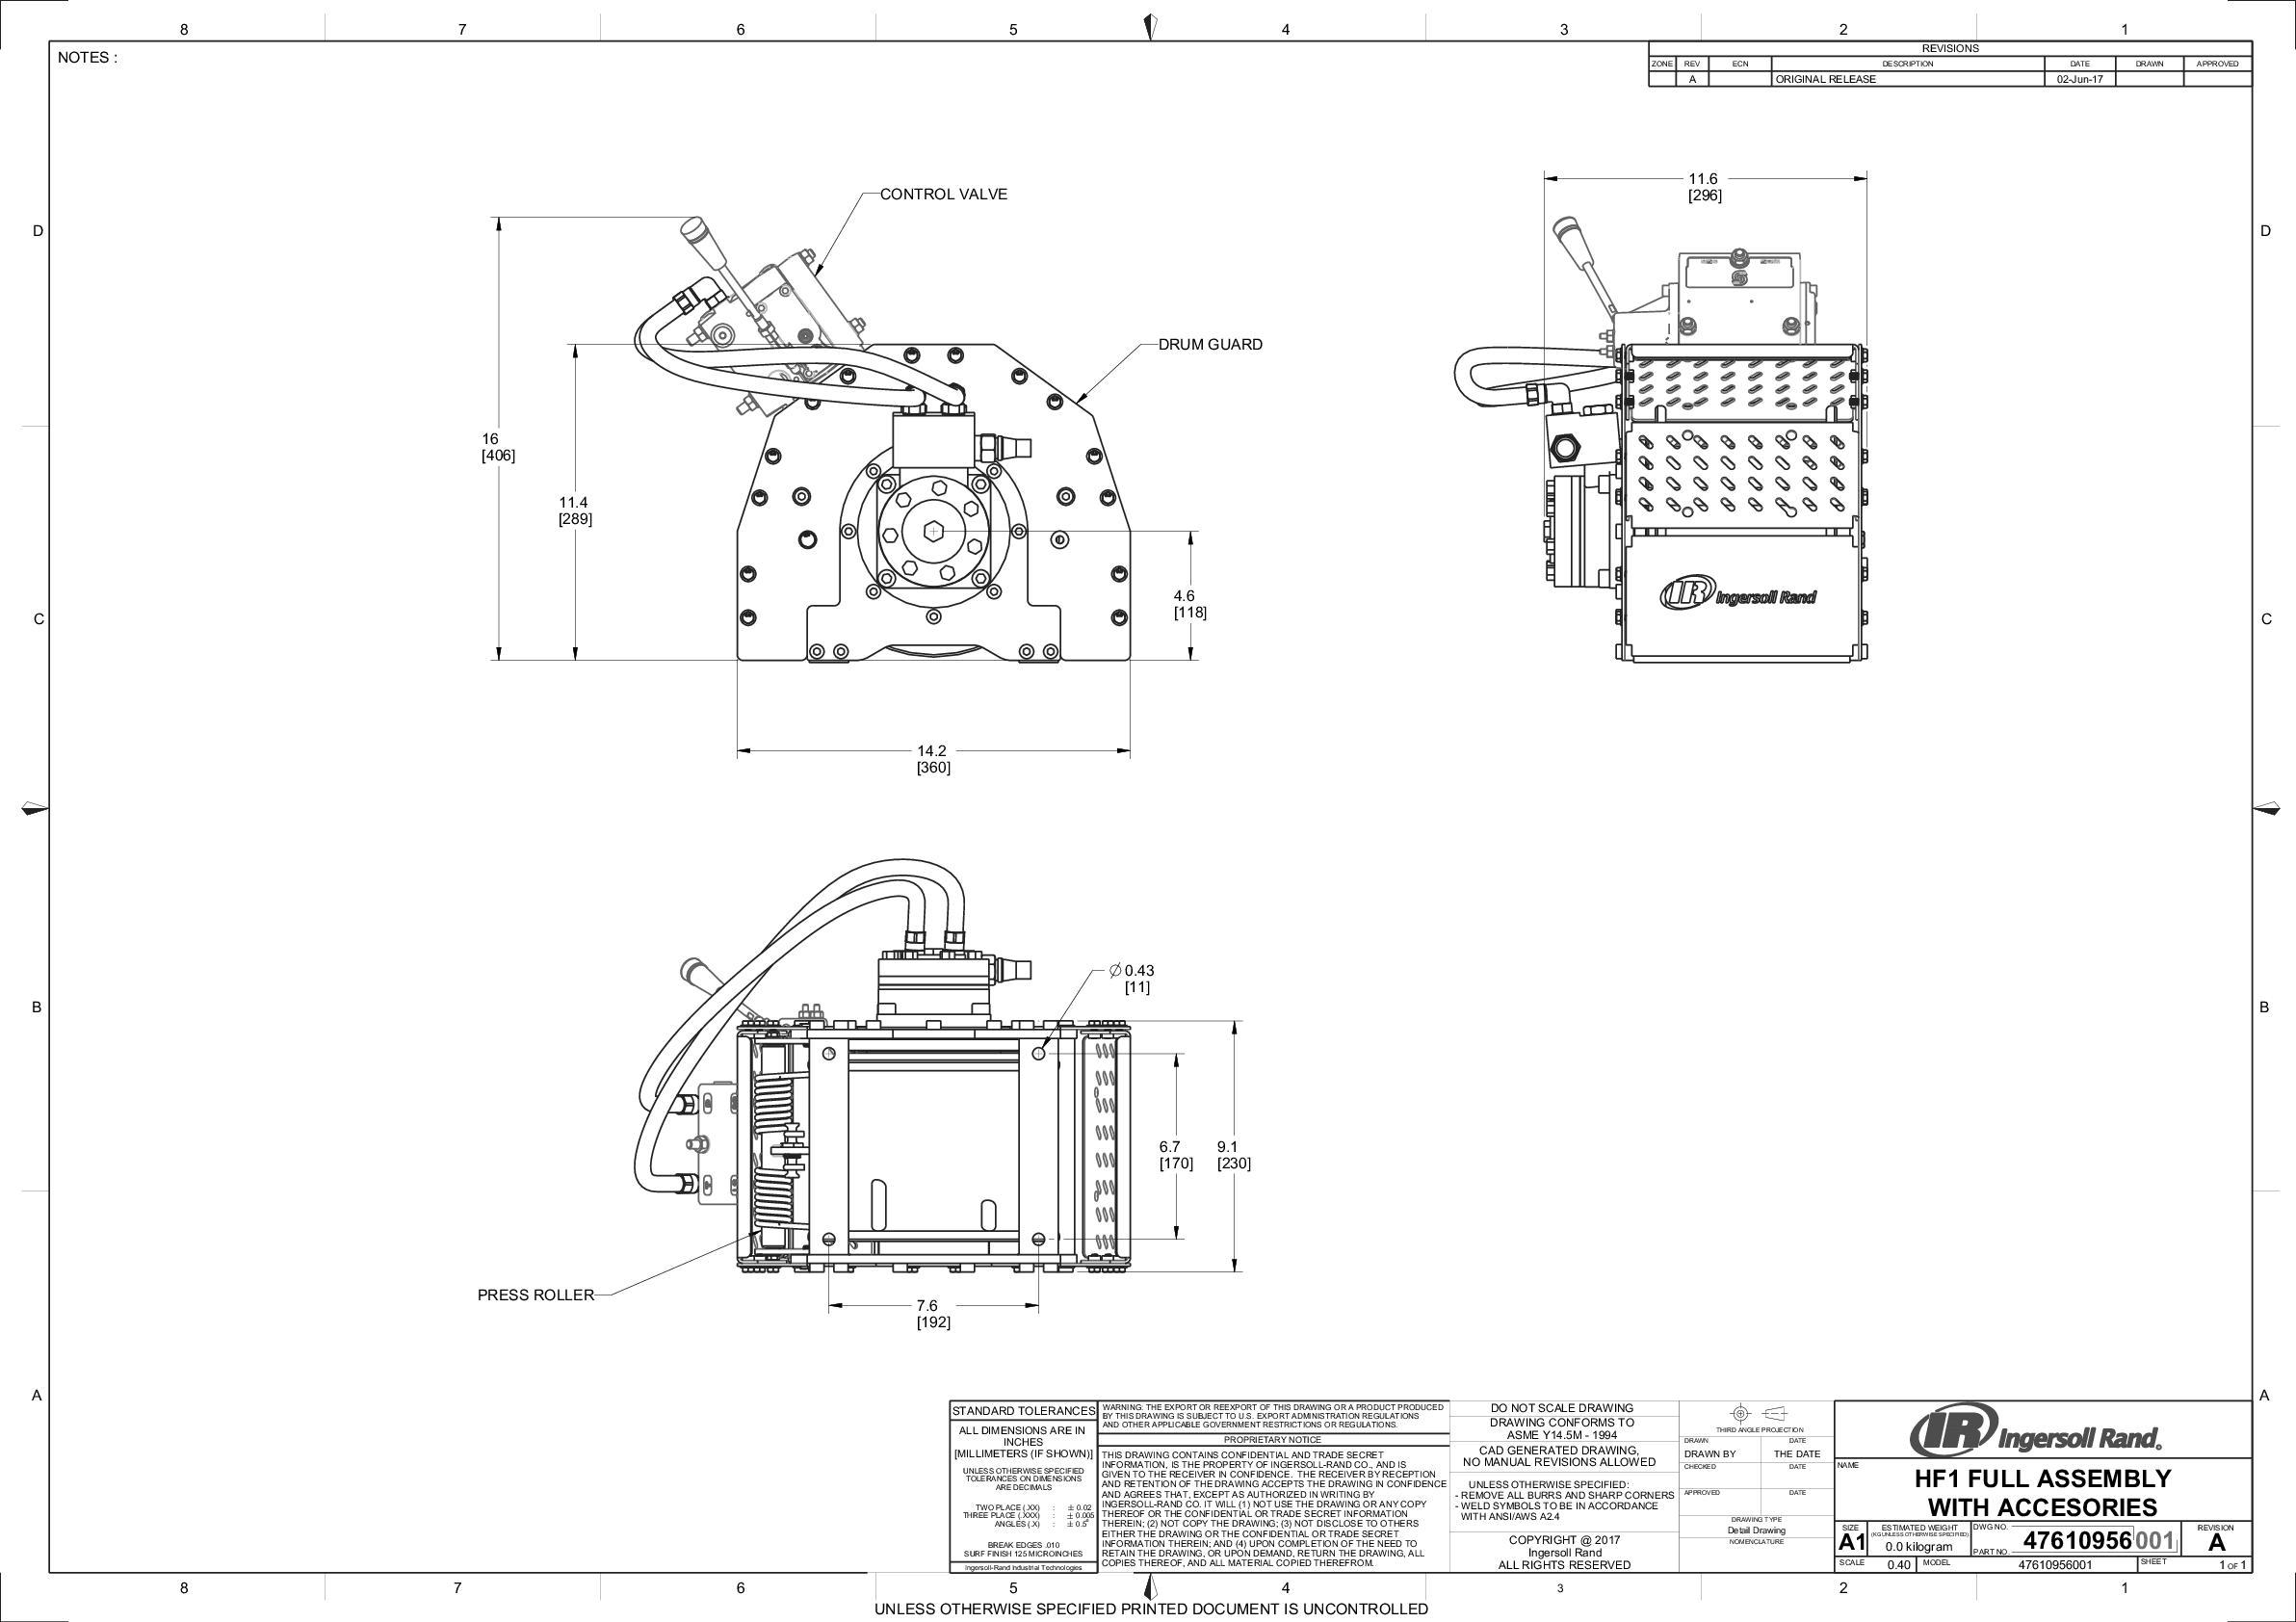 HF1 Winch Full Assembly With Accessories  drawing